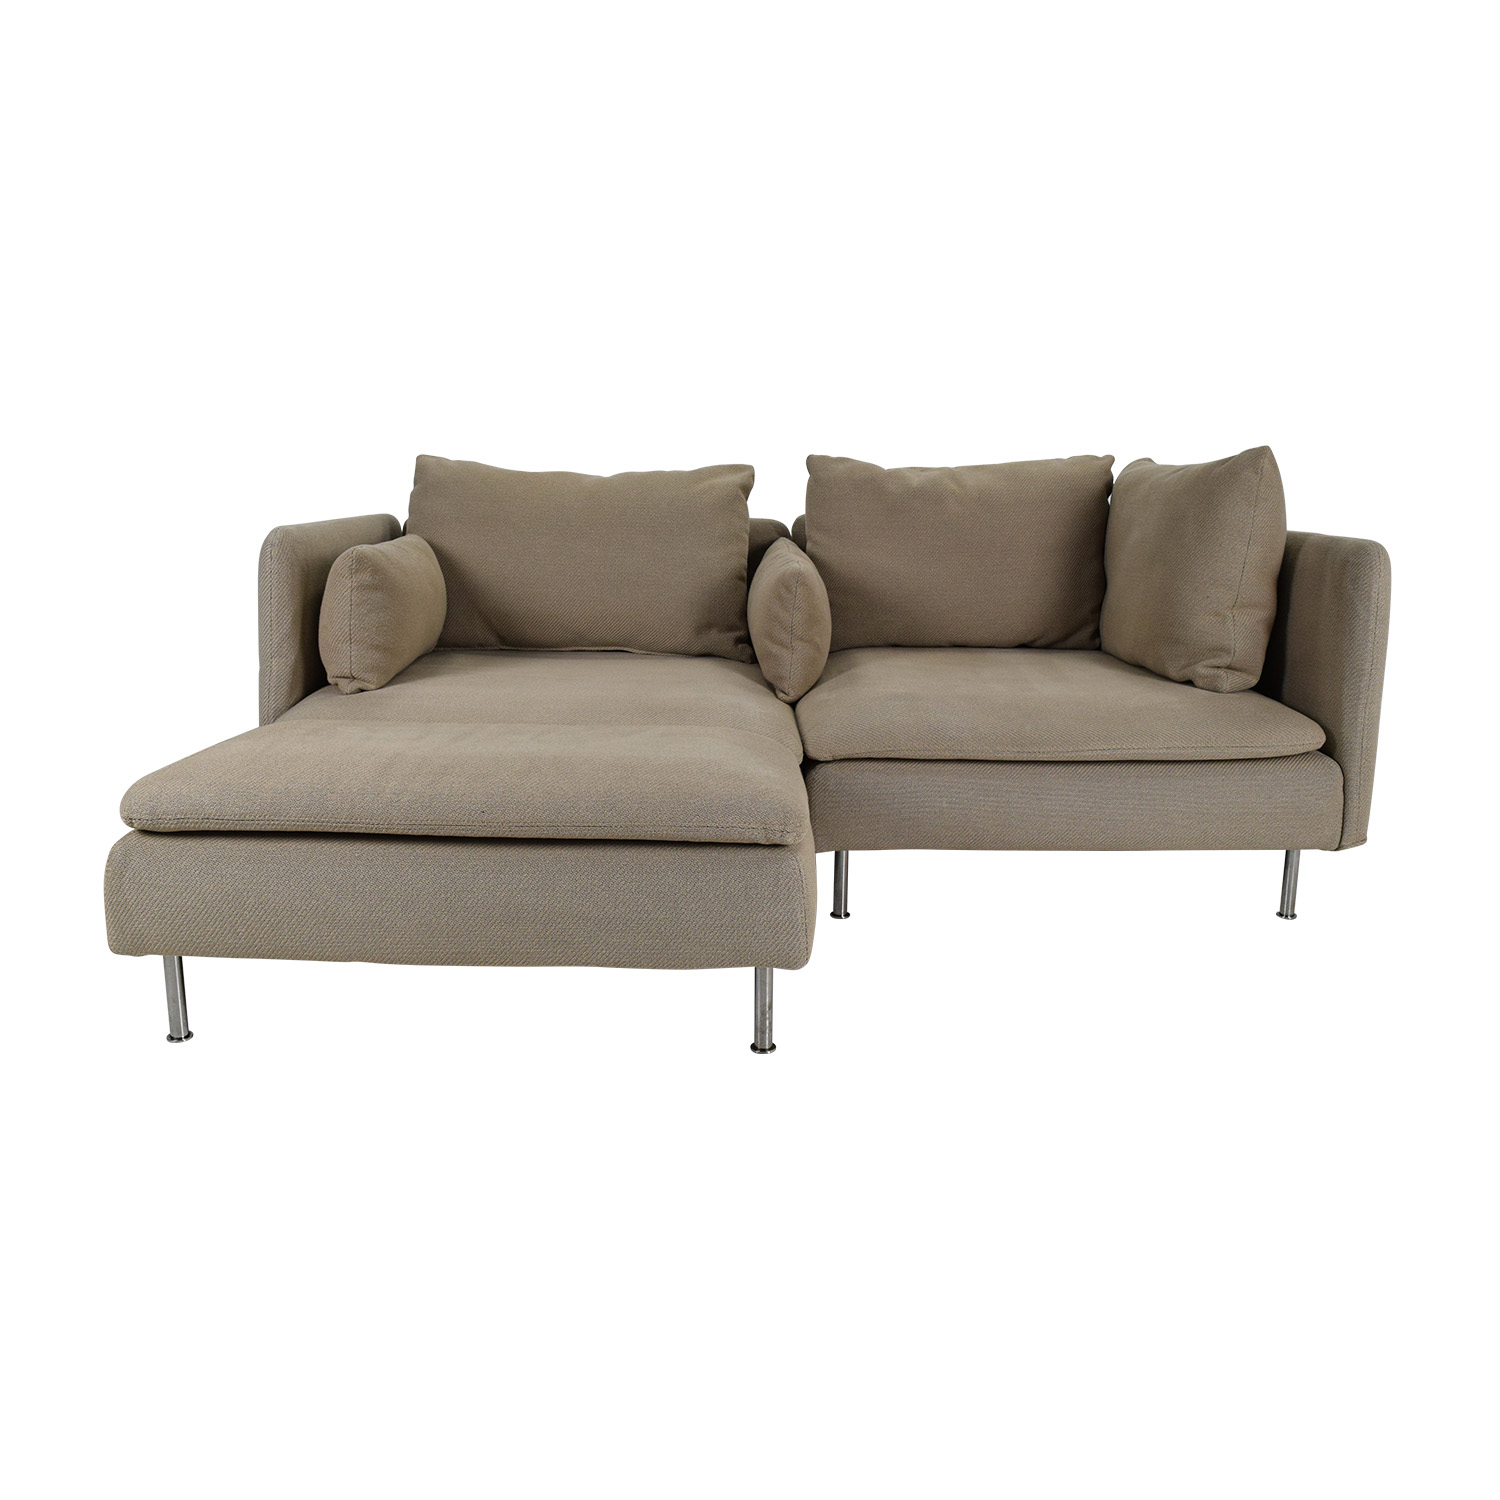 50 off ikea soderhamn sectional sofa sofas for Sofa sofa furniture